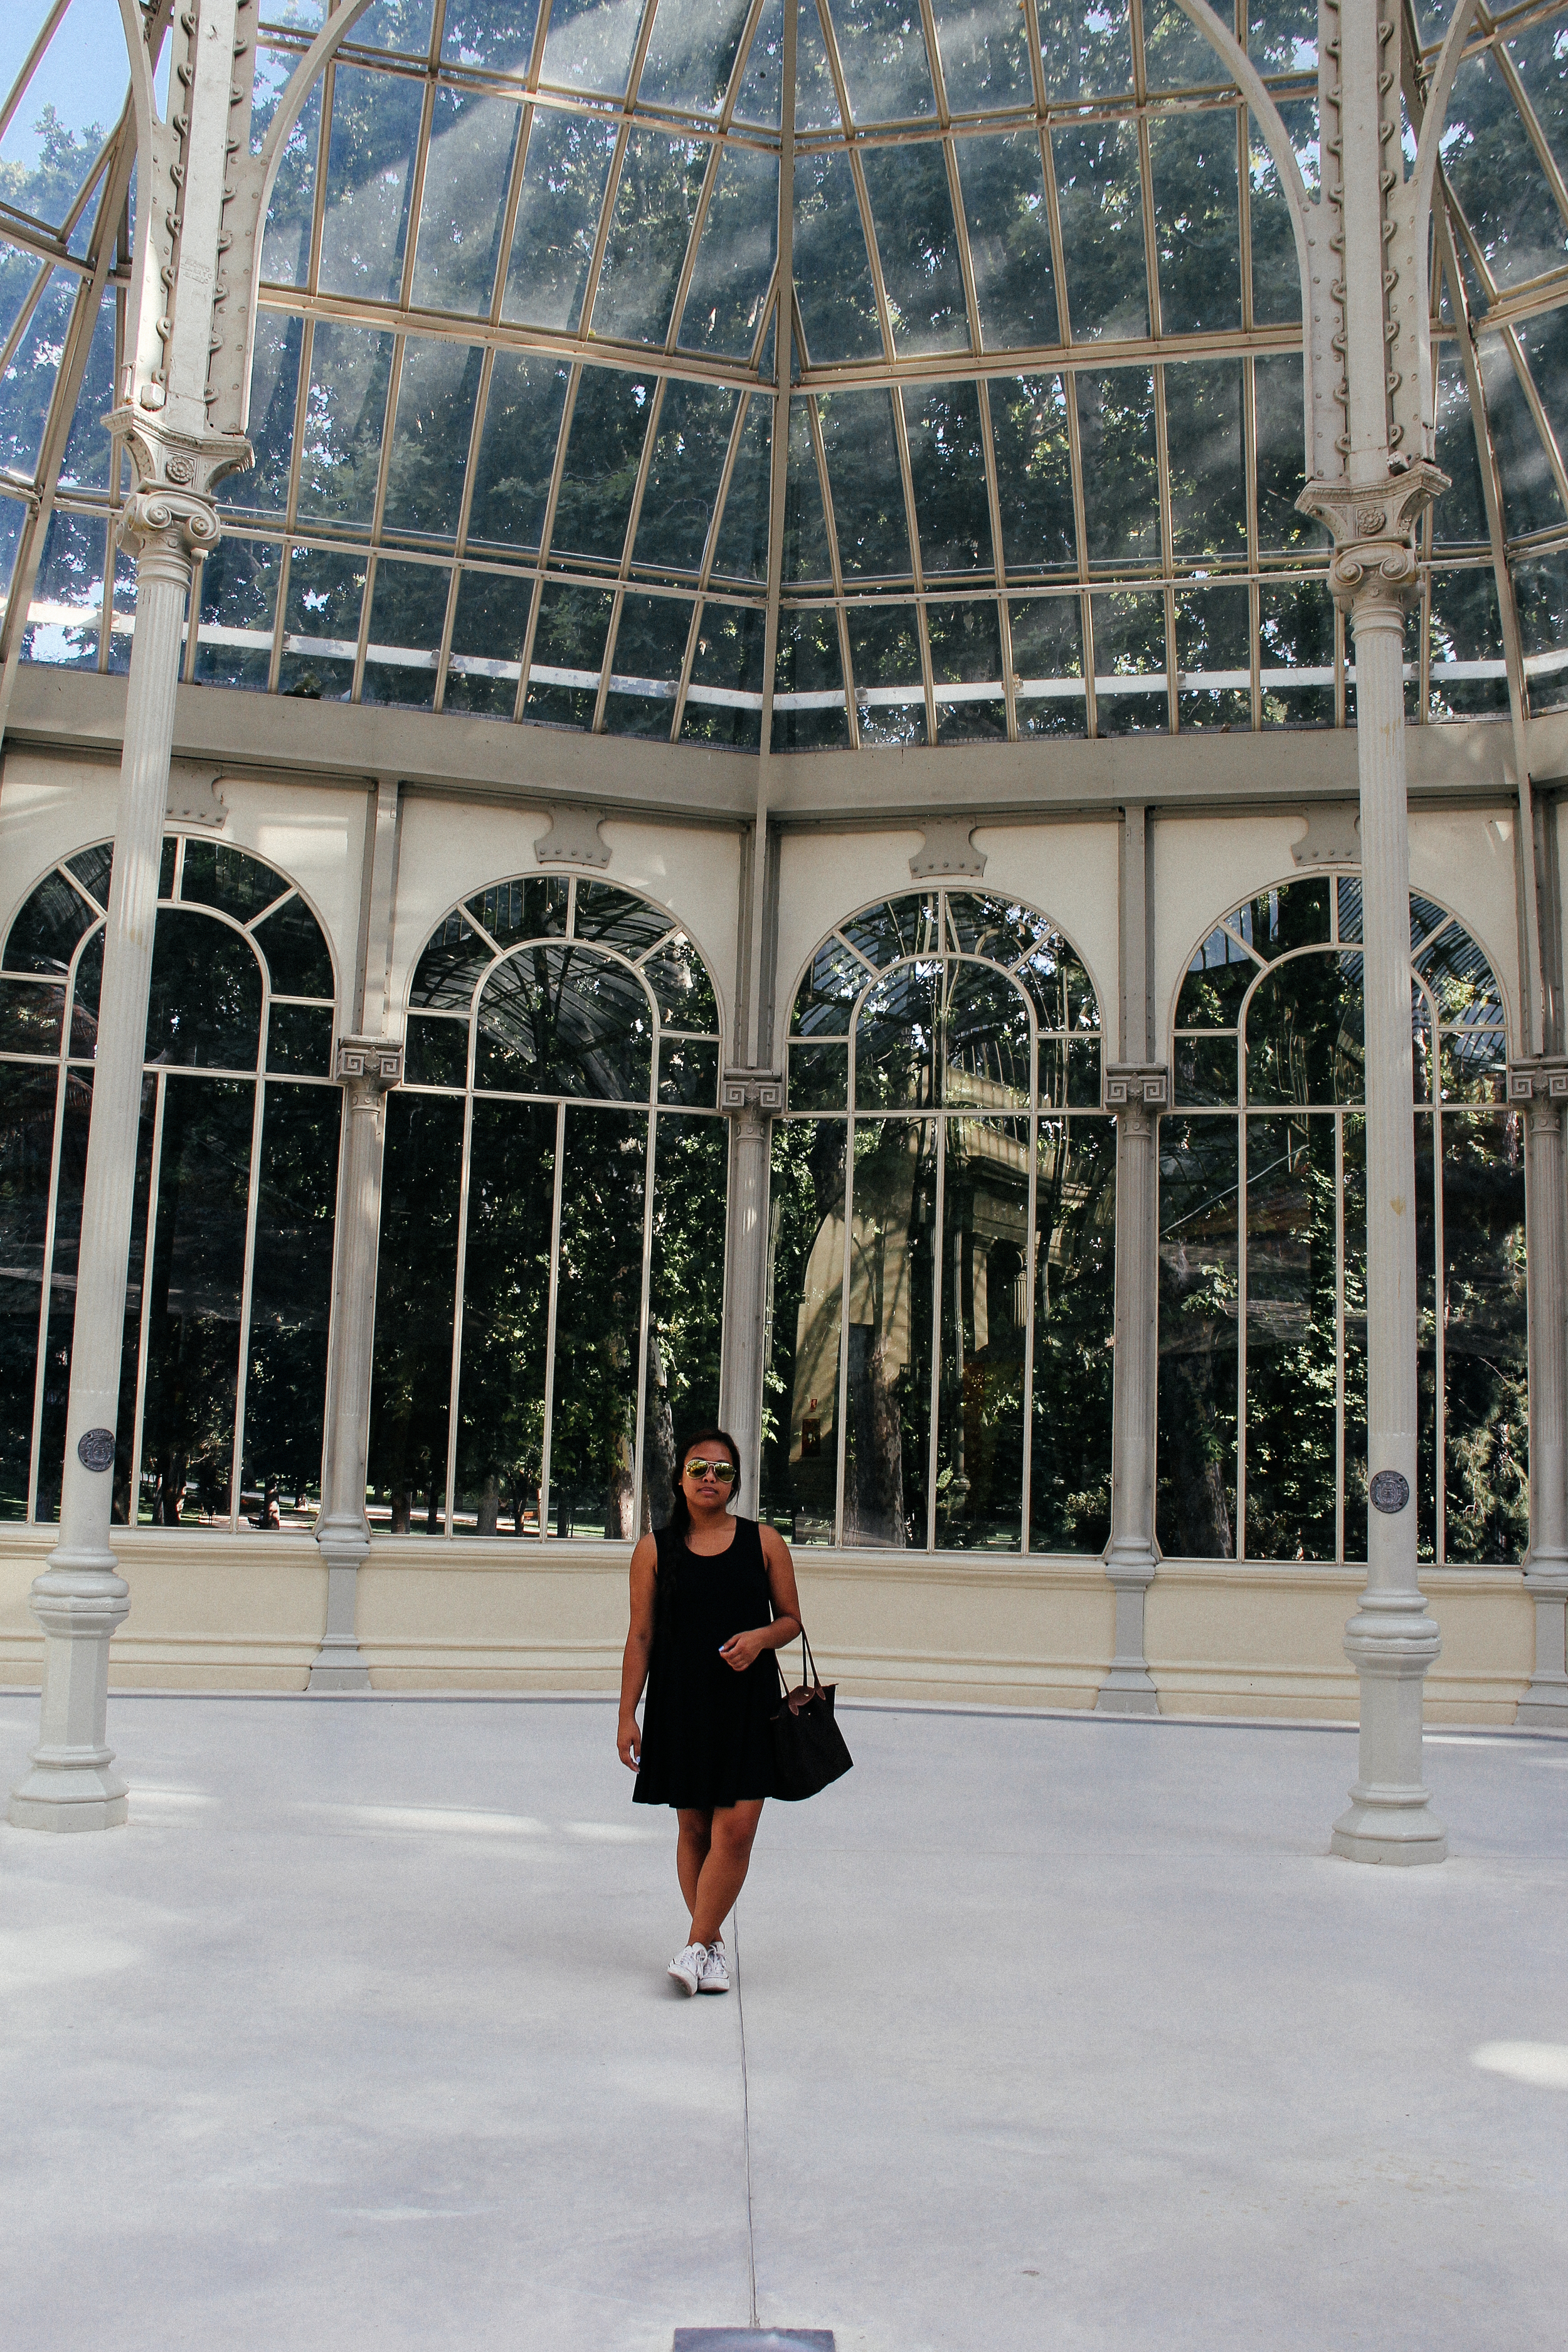 I've missed having my favorite person to photograph around! | Palacio de Cristal, Retiro Park